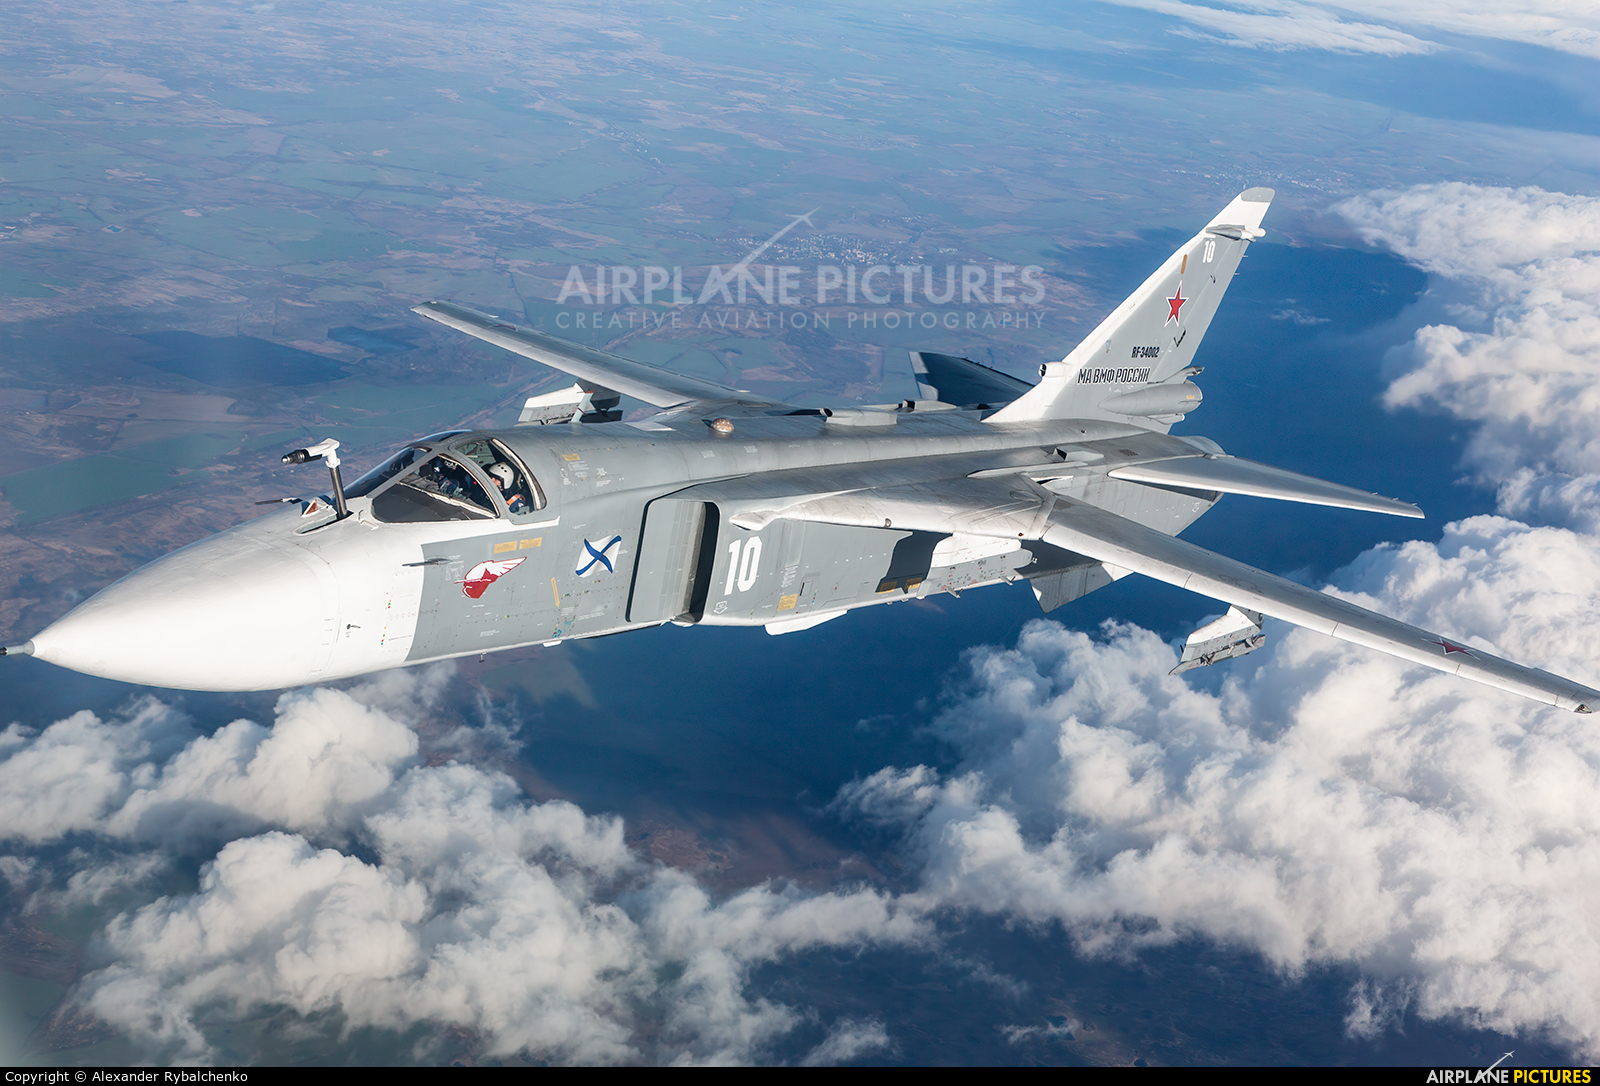 Russia - Navy RF-34002 aircraft at Undisclosed Location